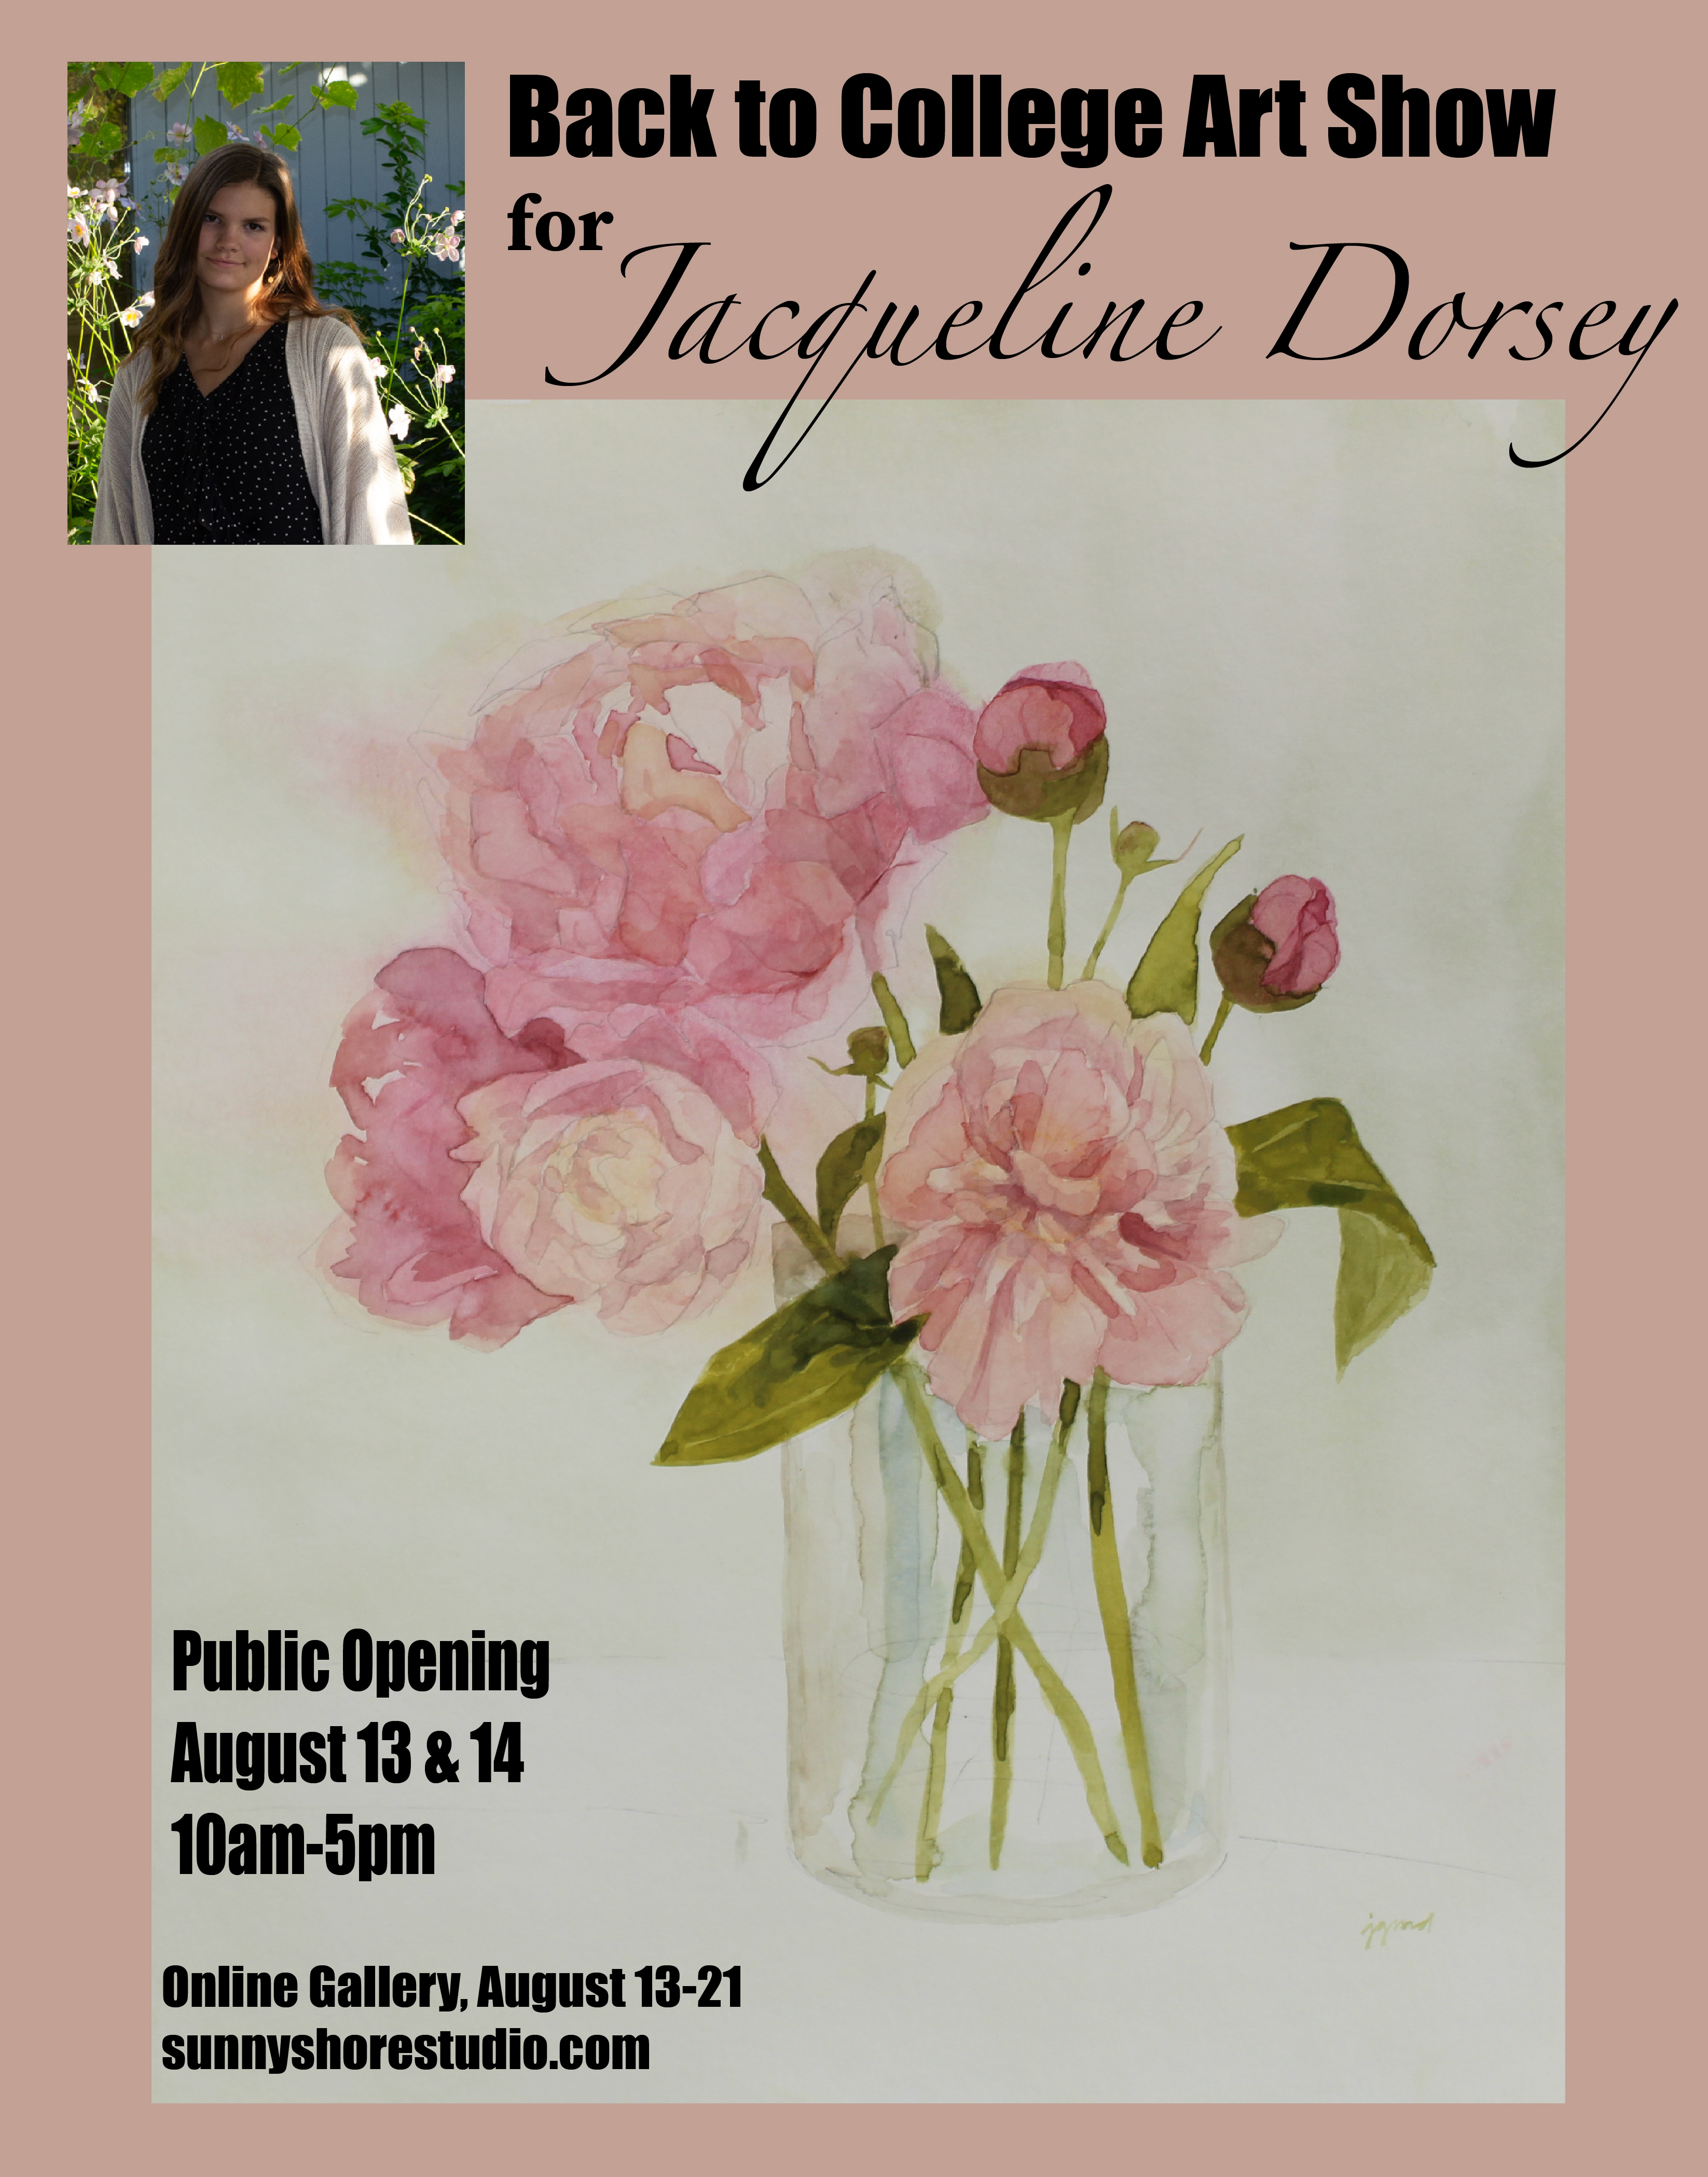 Announcing Jacqueline Dorsey's Solo Art Show: Back to College